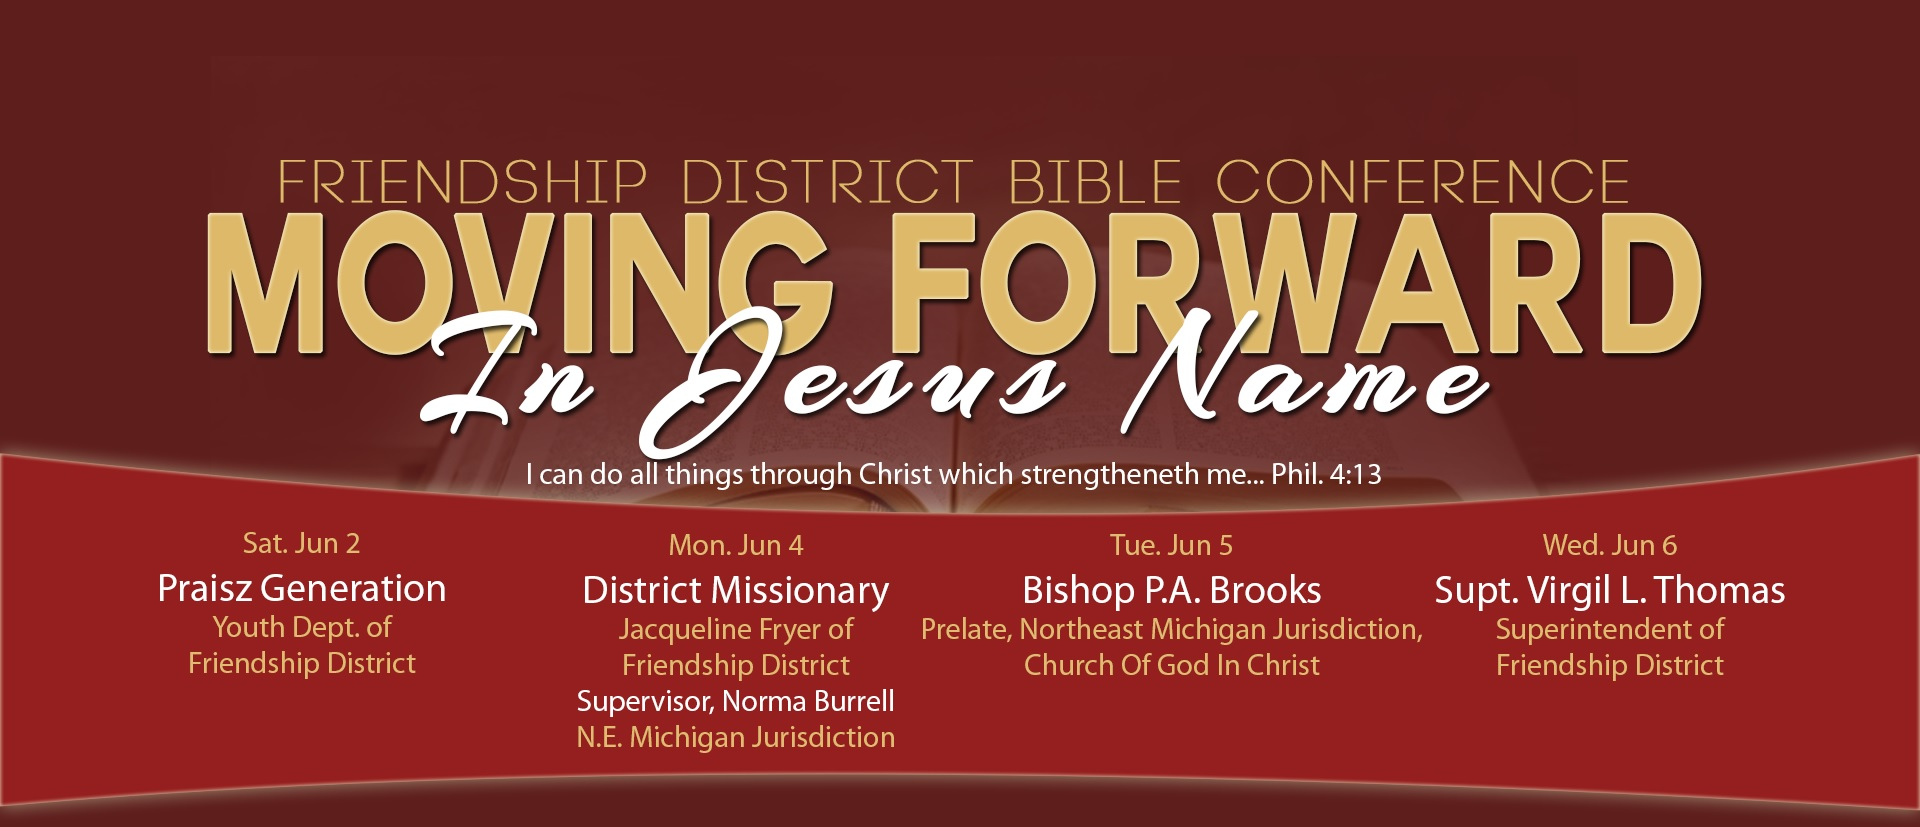 District Bible Conference